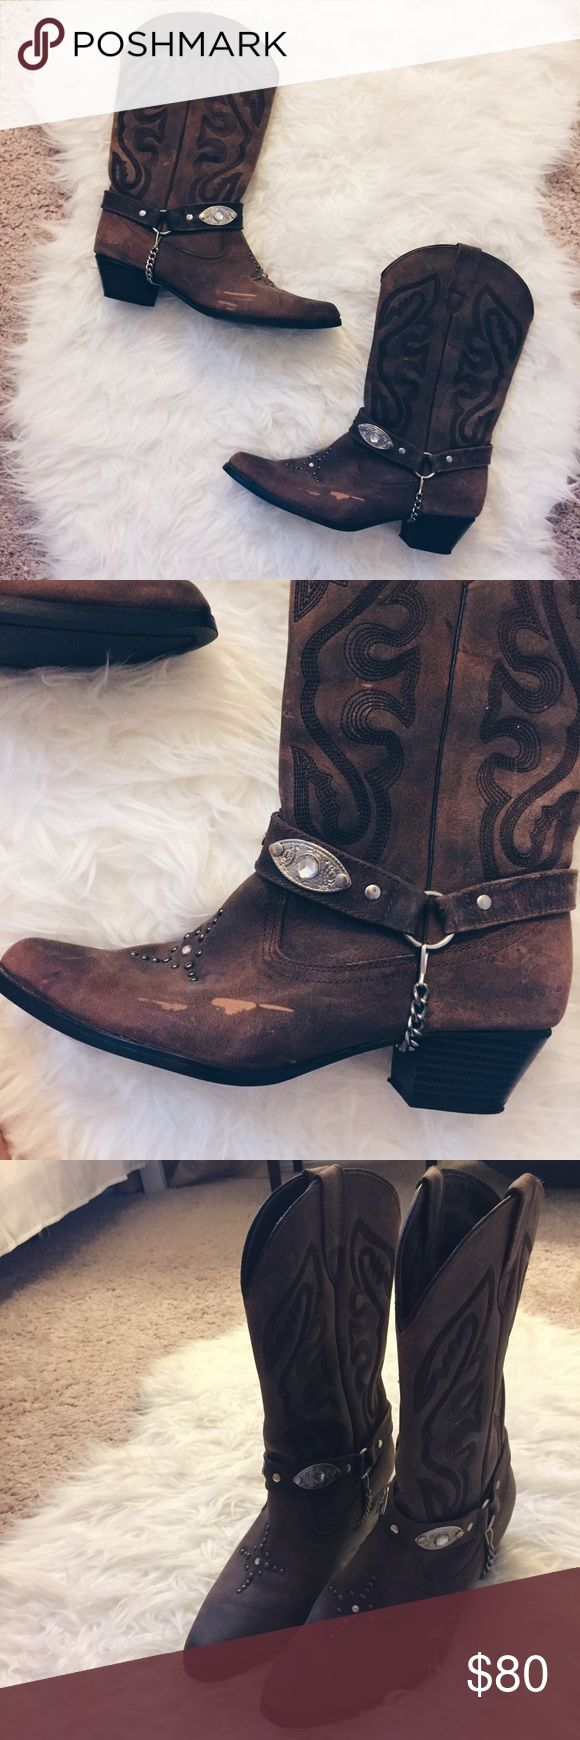 Brown Leather Cowgirl Boots - Size 8 Brown leather cowgirl boots with studs and chains. I bought these in Nashville and have only worn them once! They are in GREAT condition. There are minor scuffs on the leather (pics included.) ✨Fast shipper✨15% off 3+ items✨ Oak Tree Farms Shoes Heeled Boots